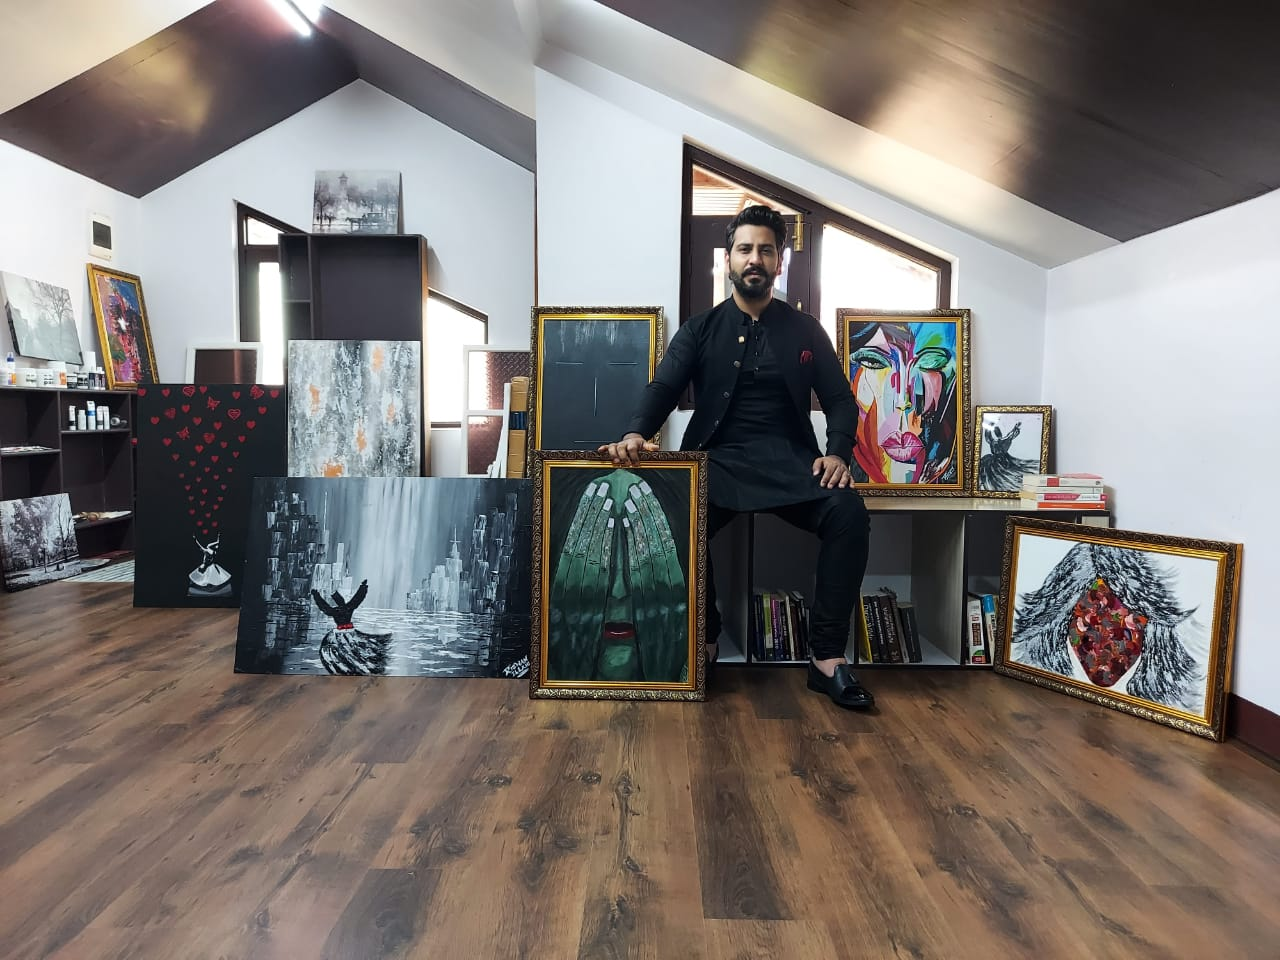 Artist Sells his Paintings Worth Millions to Raise Funds For Covid-19 Affected